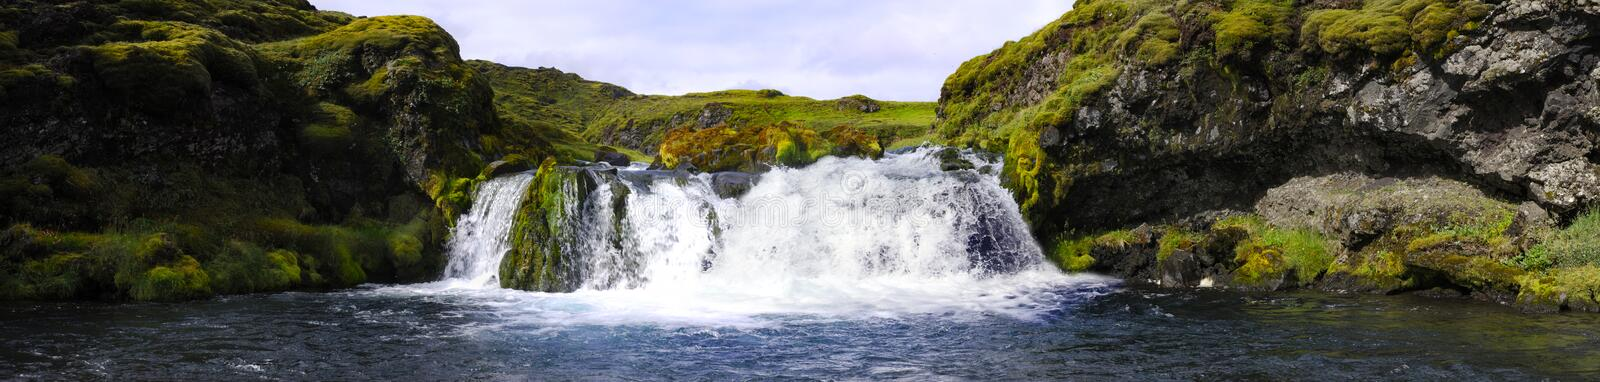 Landmannalaugar waterfall. A small, hidden and obscured waterfall in the Icelandic National Park Landmannalaugar stock image